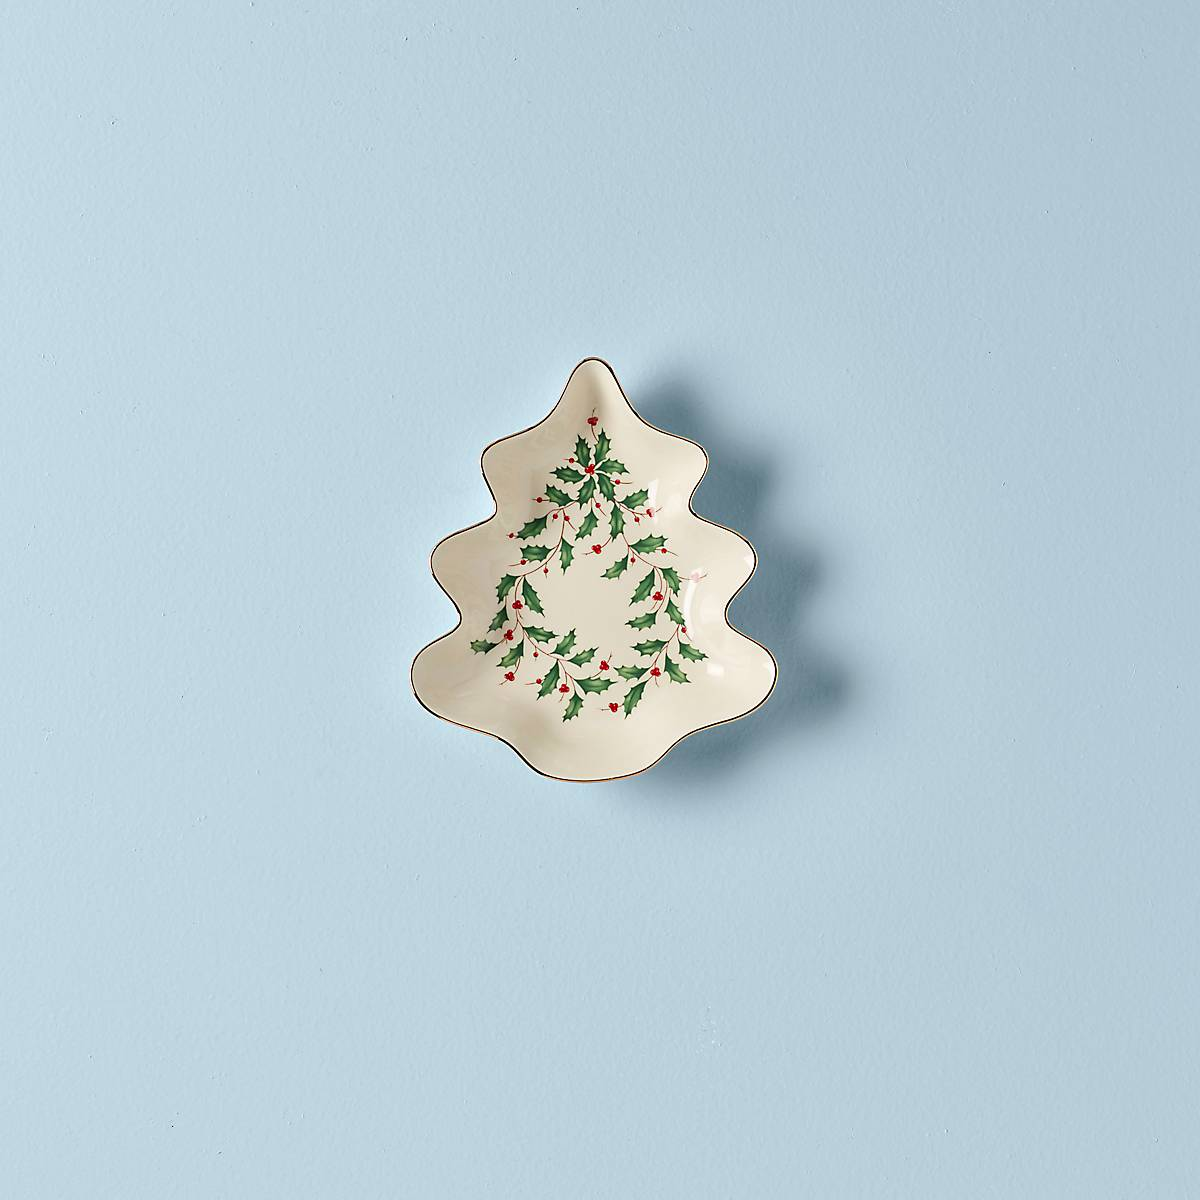 s Lenox Winter Greetings Tree Candy Dish